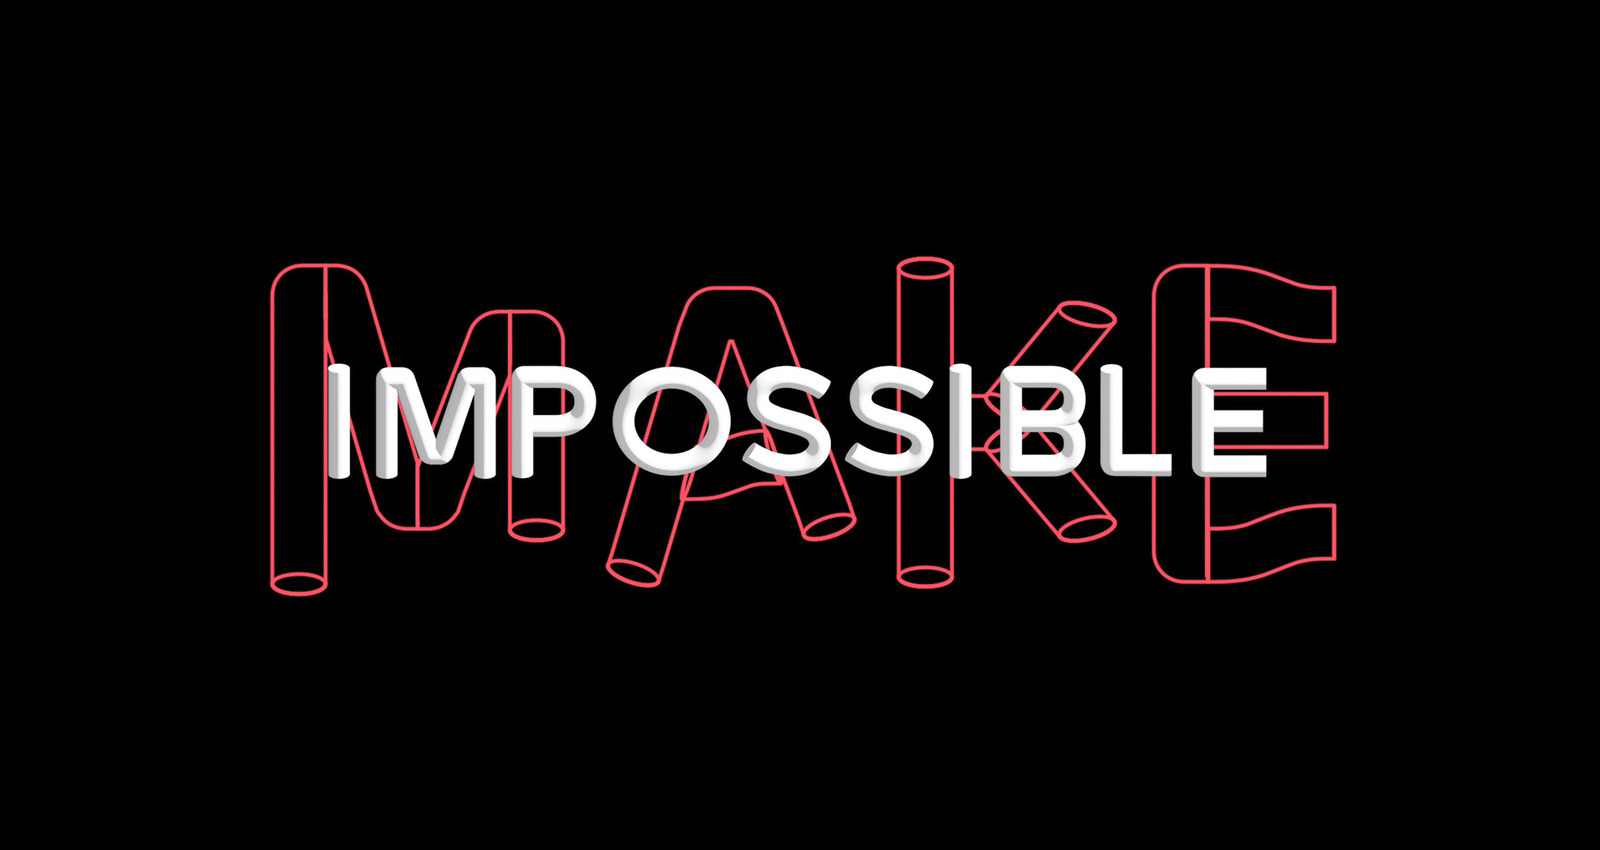 Making Impossible Possible